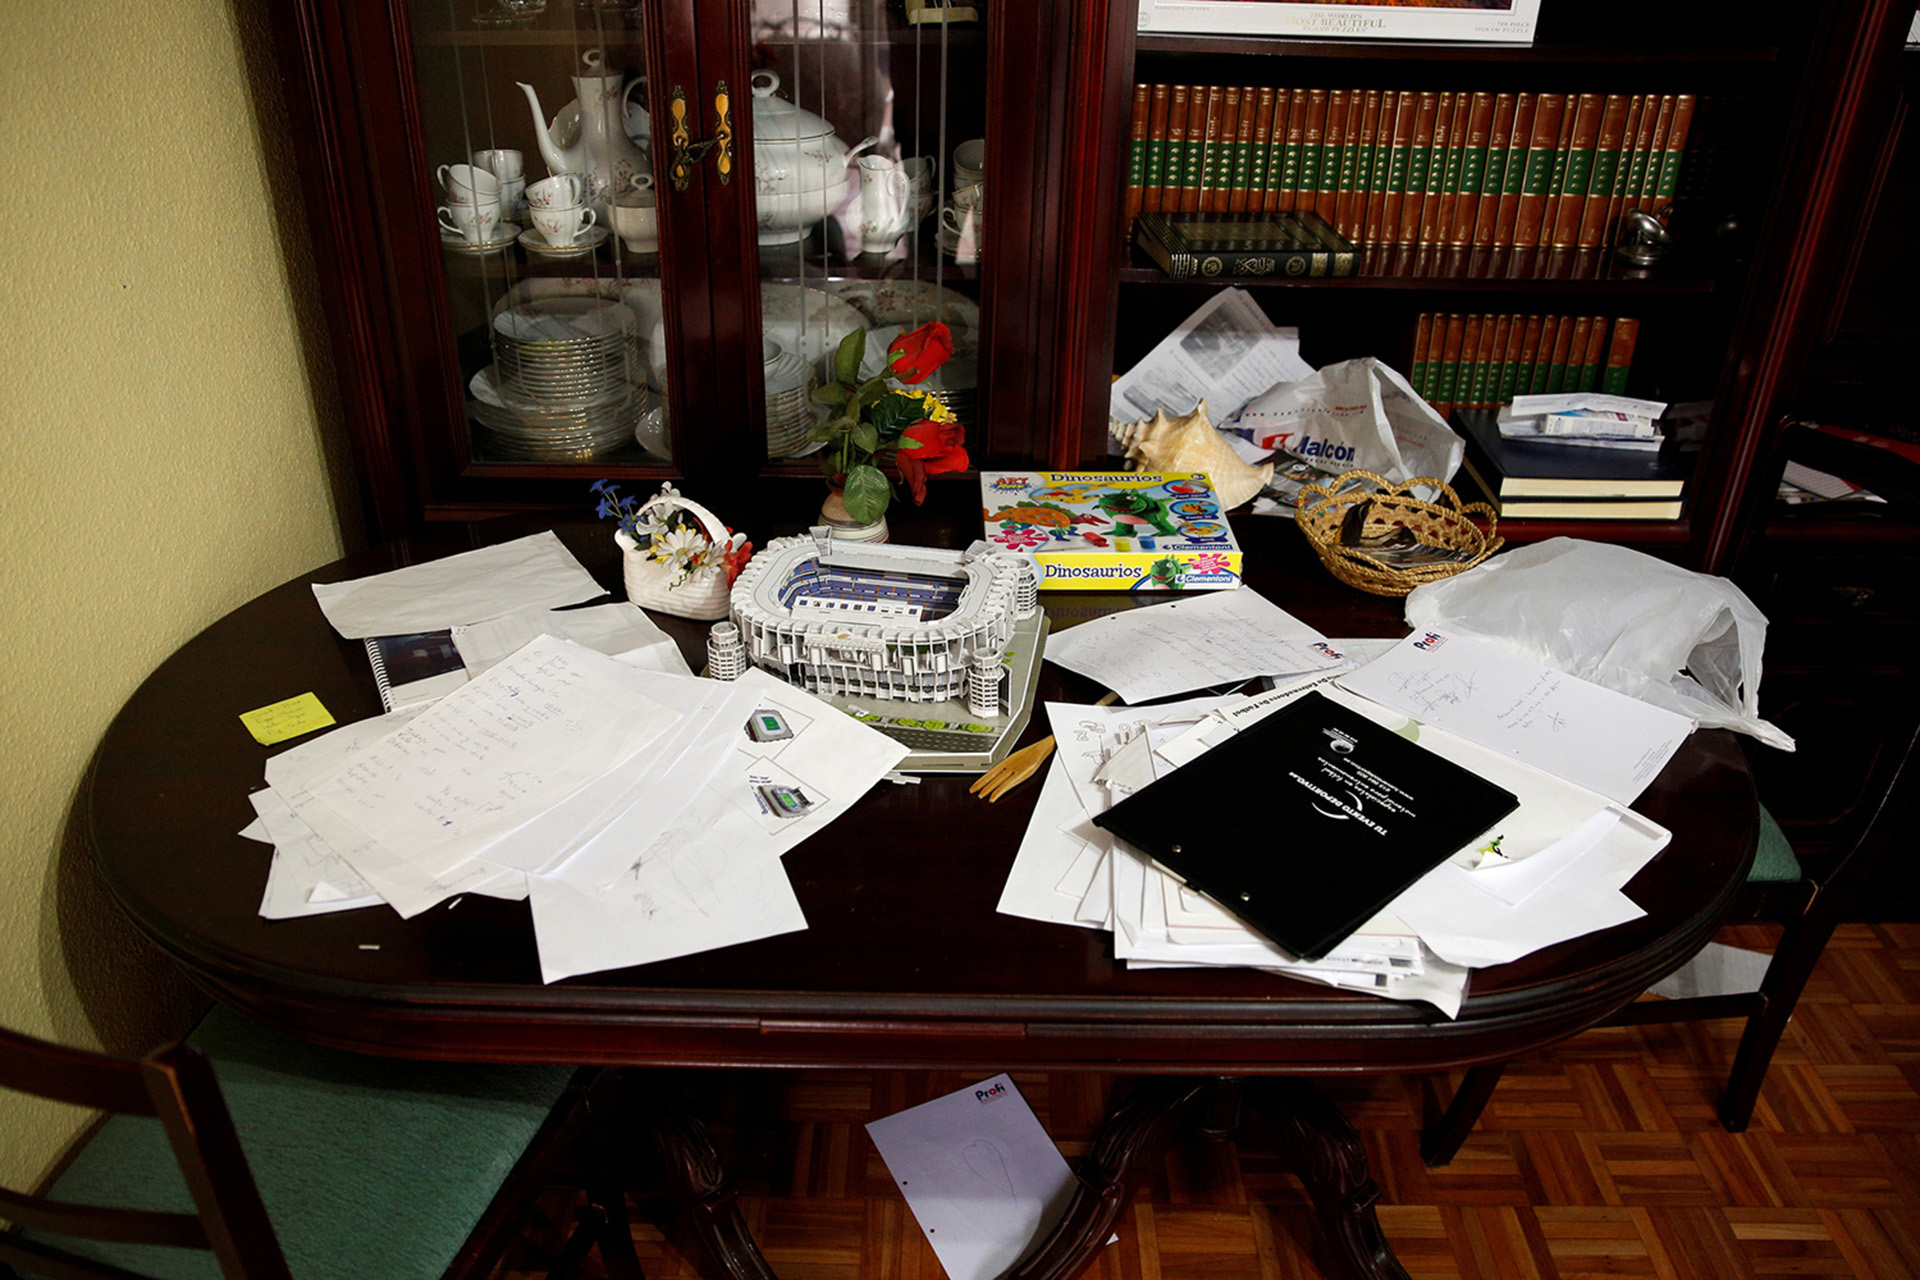 "A Spanish encyclopaedia, a model of Santiago Bernabeu stadium and Spanish homework papers are seen on a table inside the home of Osama Abdul Mohsen, a Syrian refugee, in Getafe, outside Madrid, Spain, April 21, 2016. Mohsen's story went viral after he was filmed being tripped up by a camerawoman as he fled police near the Hungarian border with Serbia last September. He was carrying his youngest son Zaid in his arms at the time, and the two fell sprawling on the ground. Footage of the incident helped bring him to the attention of a soccer training school in Getafe on the outskirts of Madrid, which found him work as a liaison officer. REUTERS/Sergio Perez     SEARCH ""REFUGEE PEREZ"" FOR THIS STORY. SEARCH ""THE WIDER IMAGE"" FOR ALL STORIES   - RTX2CXCT"